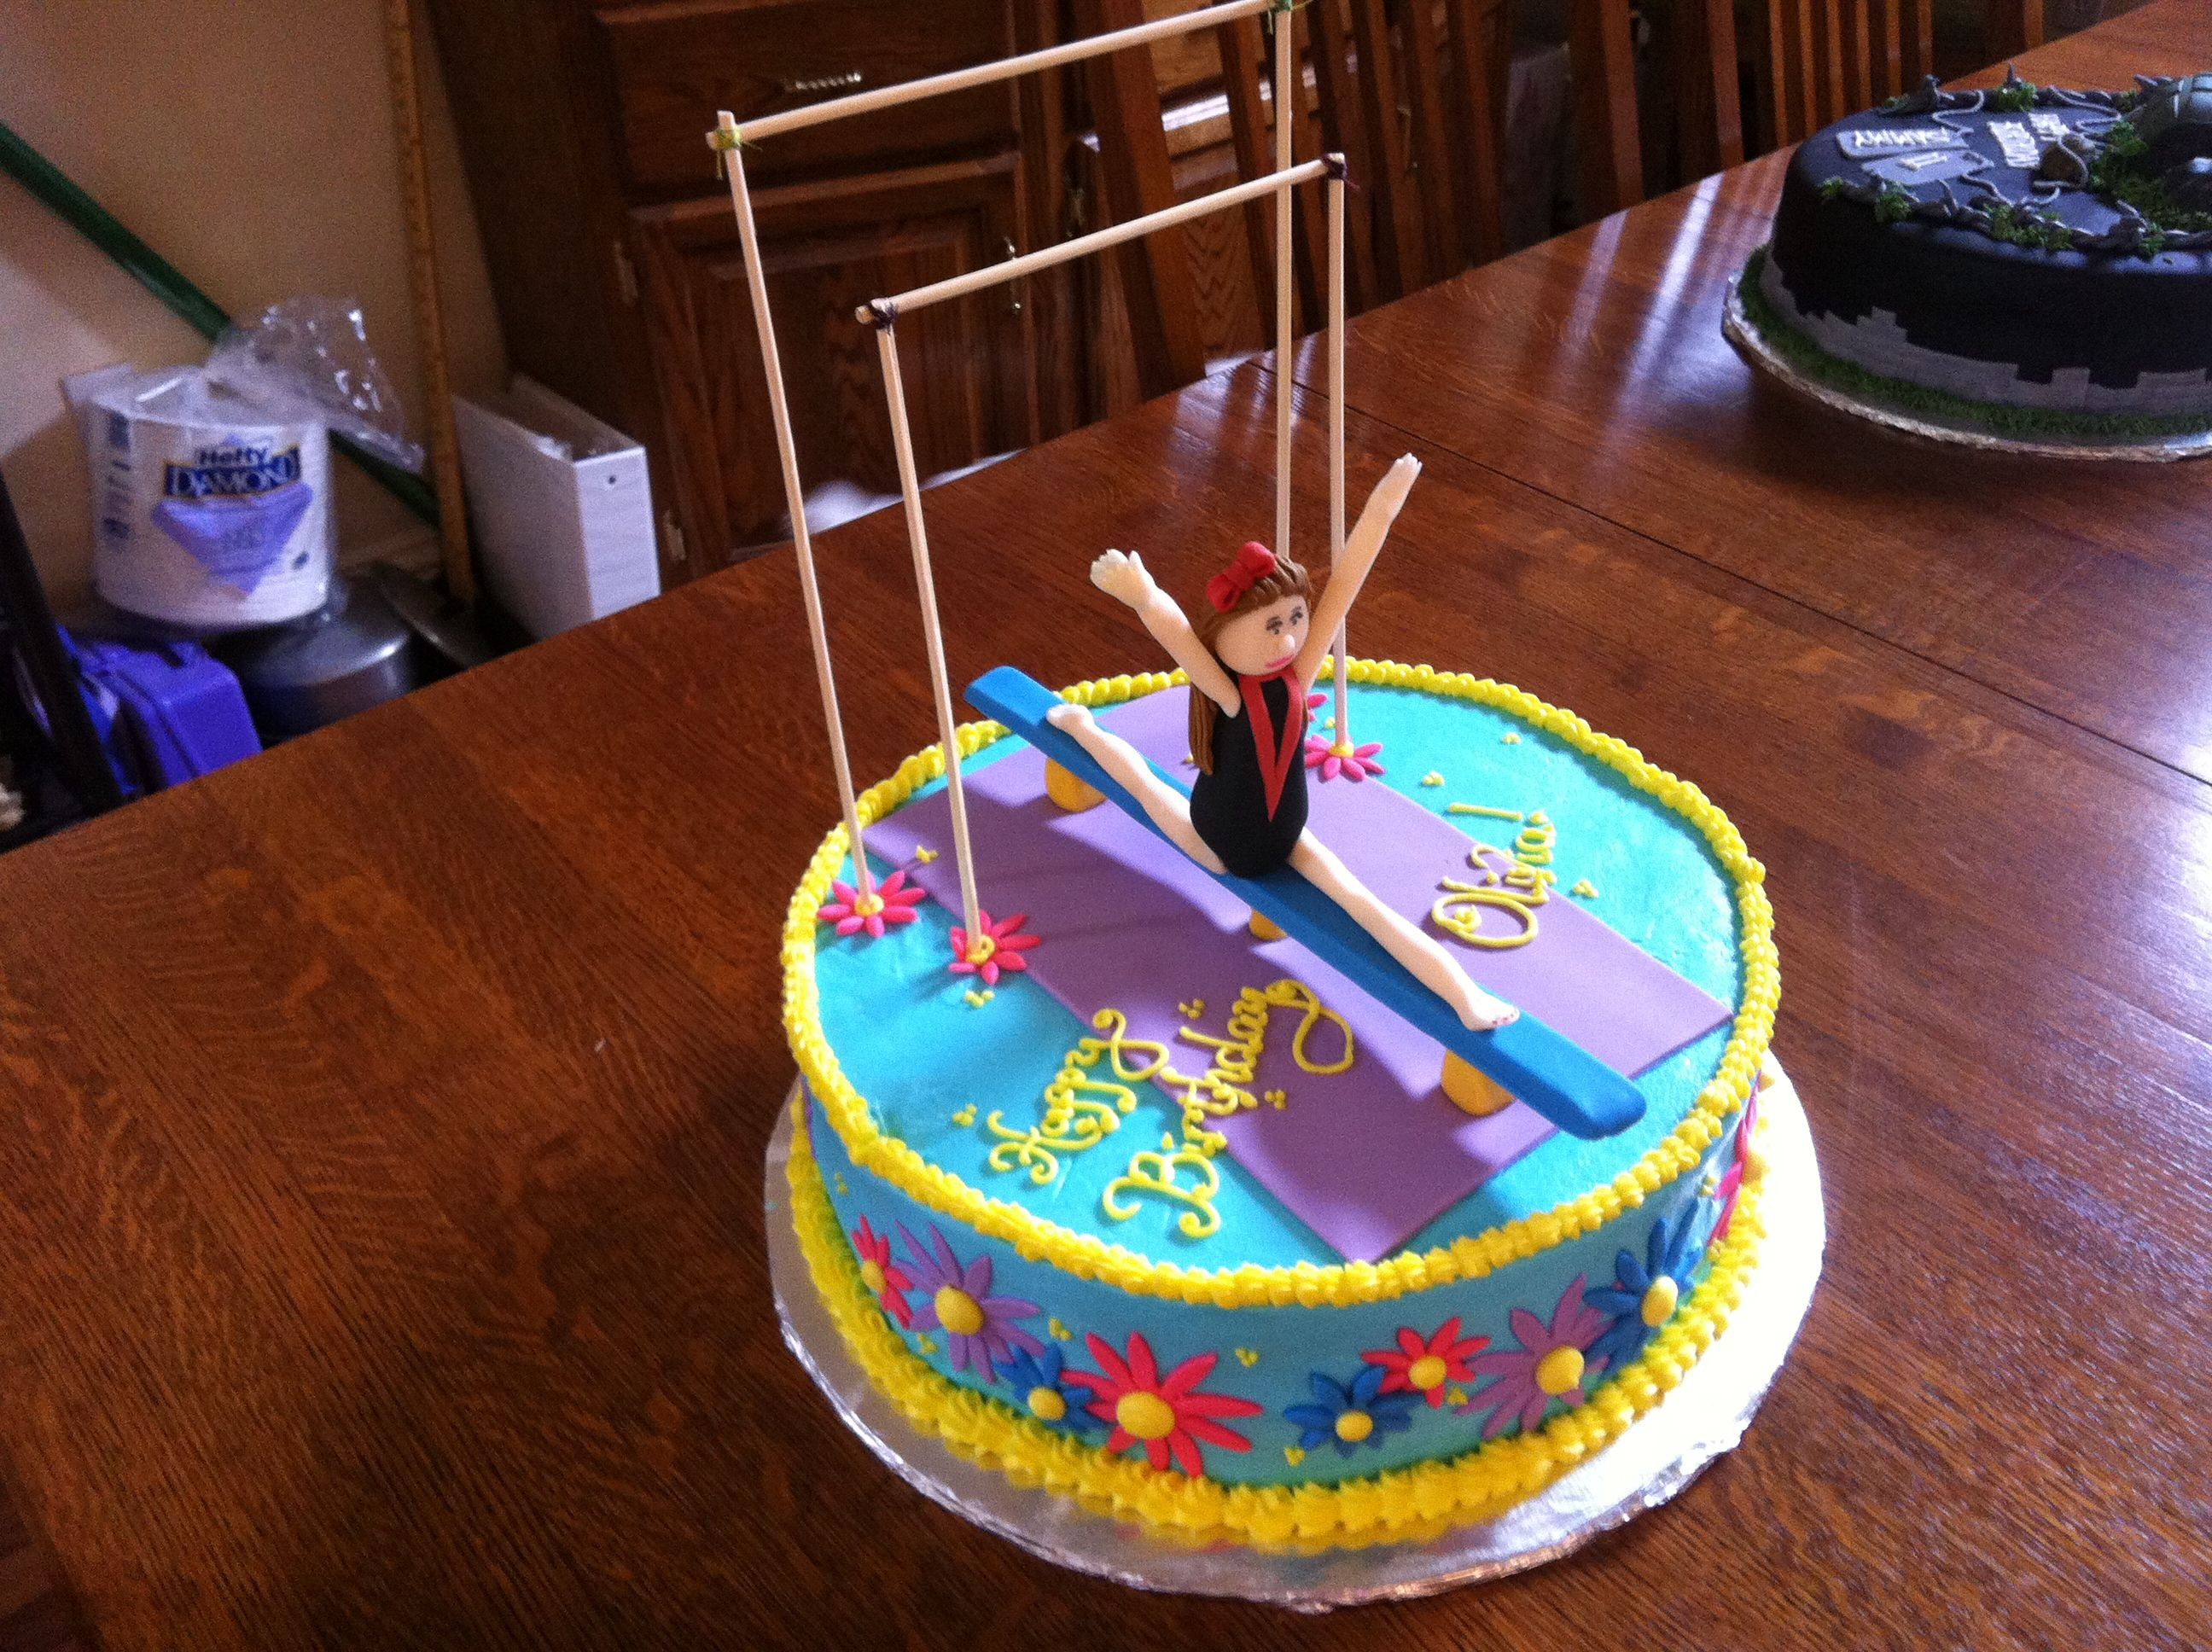 Cake Decorating Ideas Gymnastics : Gymnastics cake Cakes Pinterest